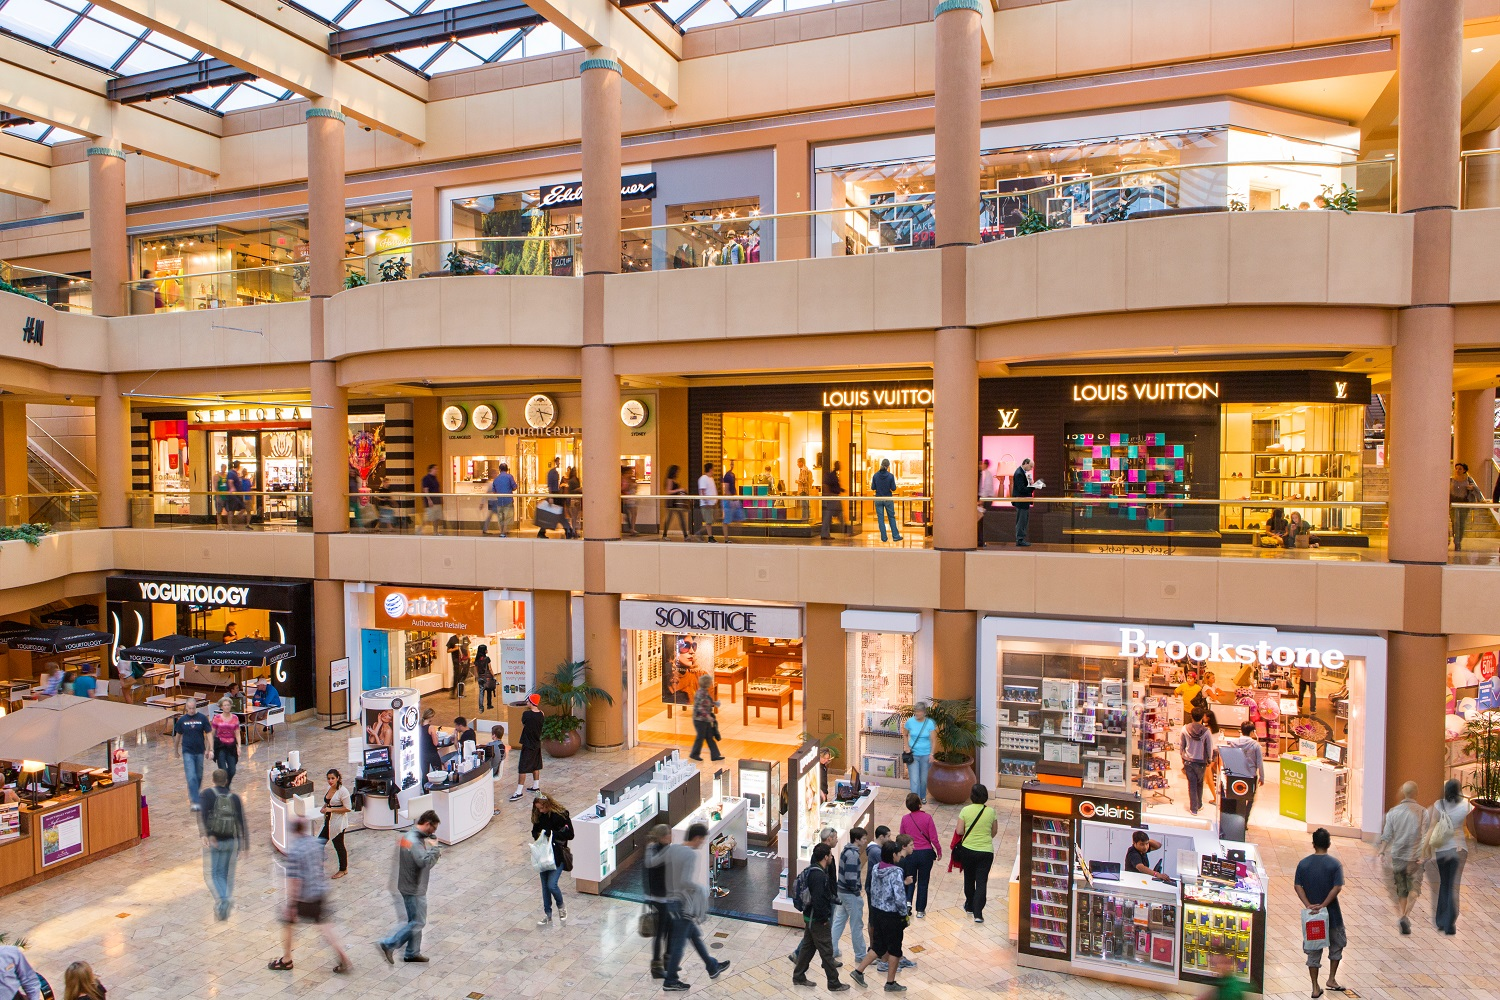 Wi-Fi-FreeSpot Directory - locations that offer Free Pompano fashion square mall directory